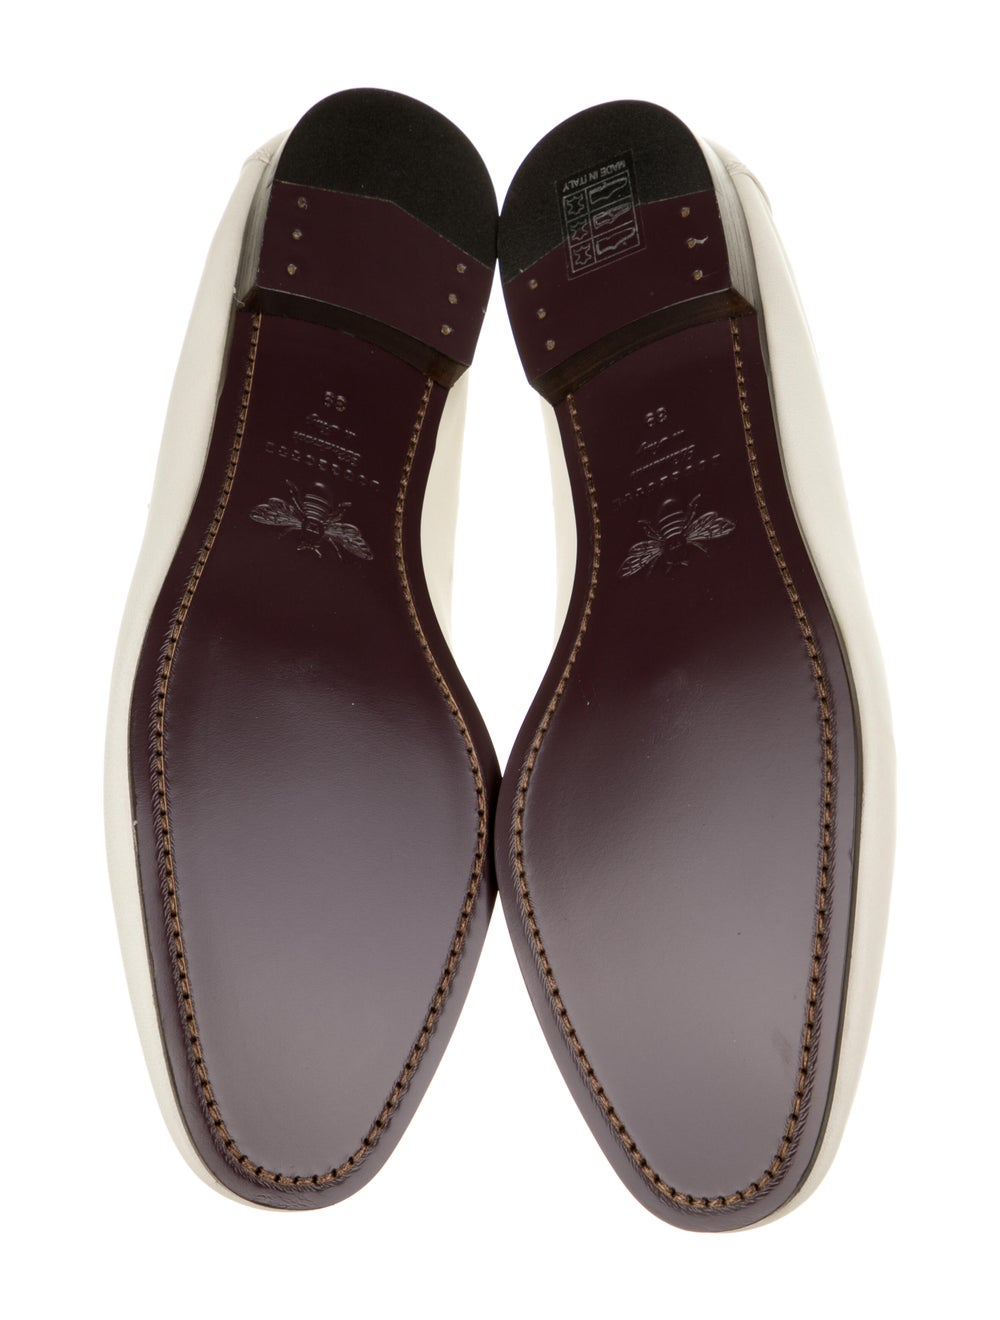 Bougeotte Loafers - image 5